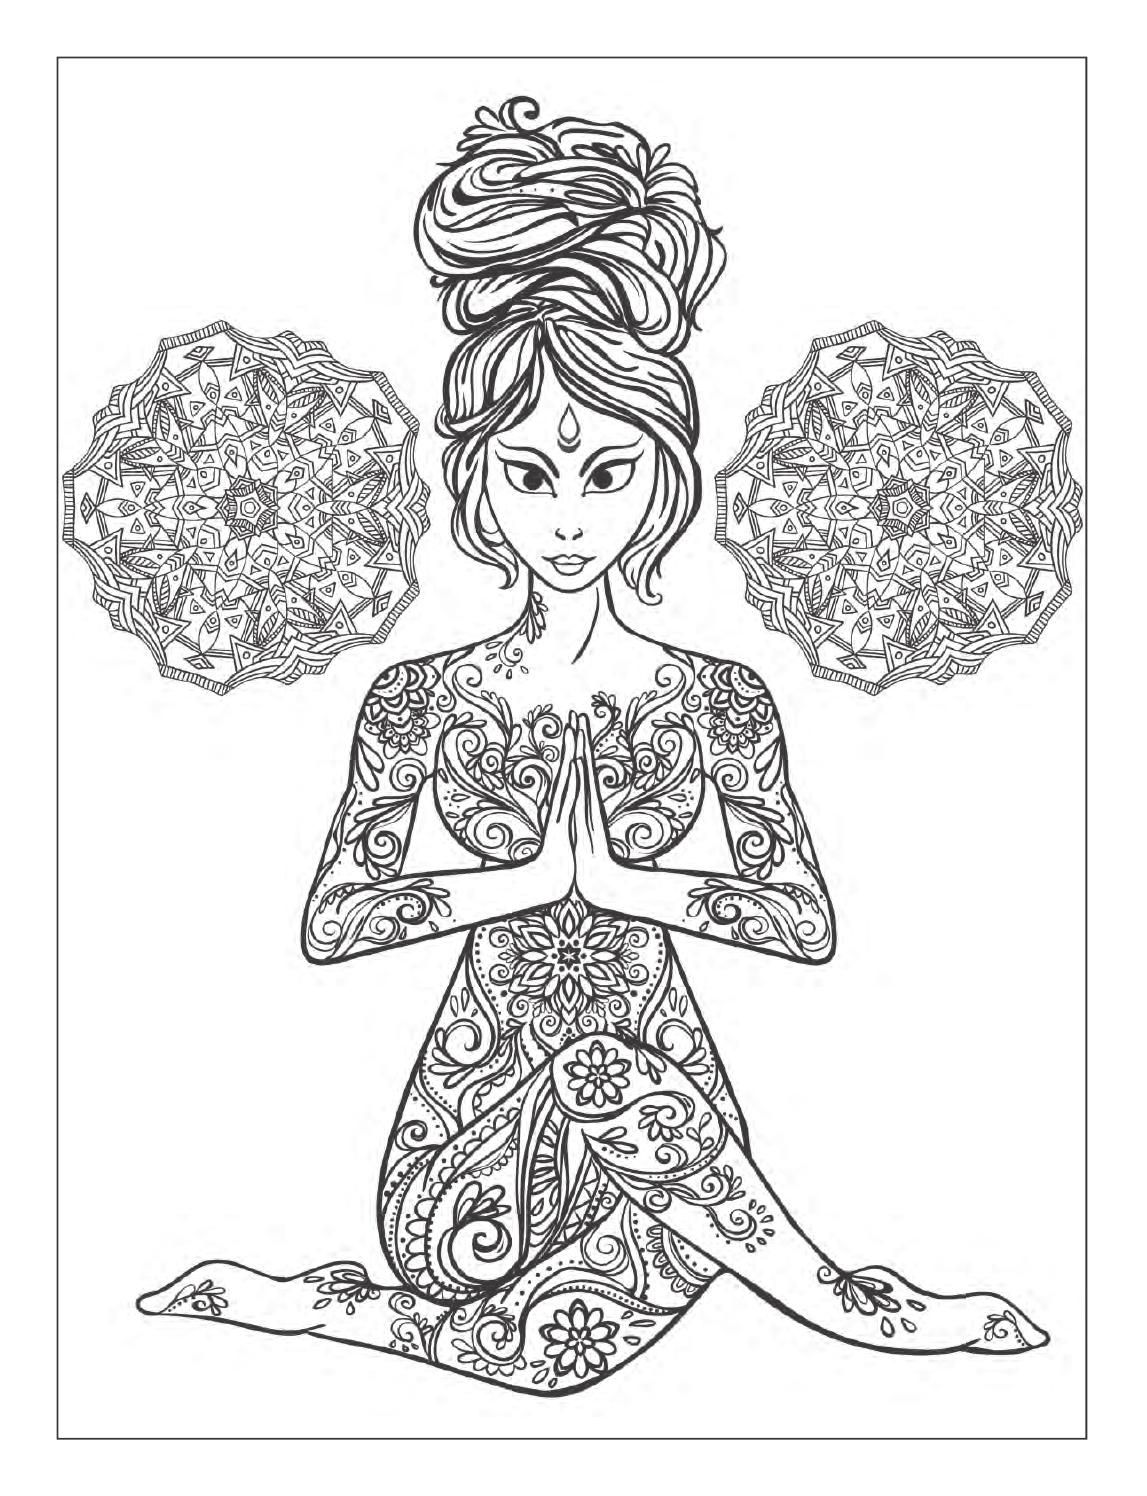 1147x1496 Yoga And Meditation Coloring Book For Adults With Poses